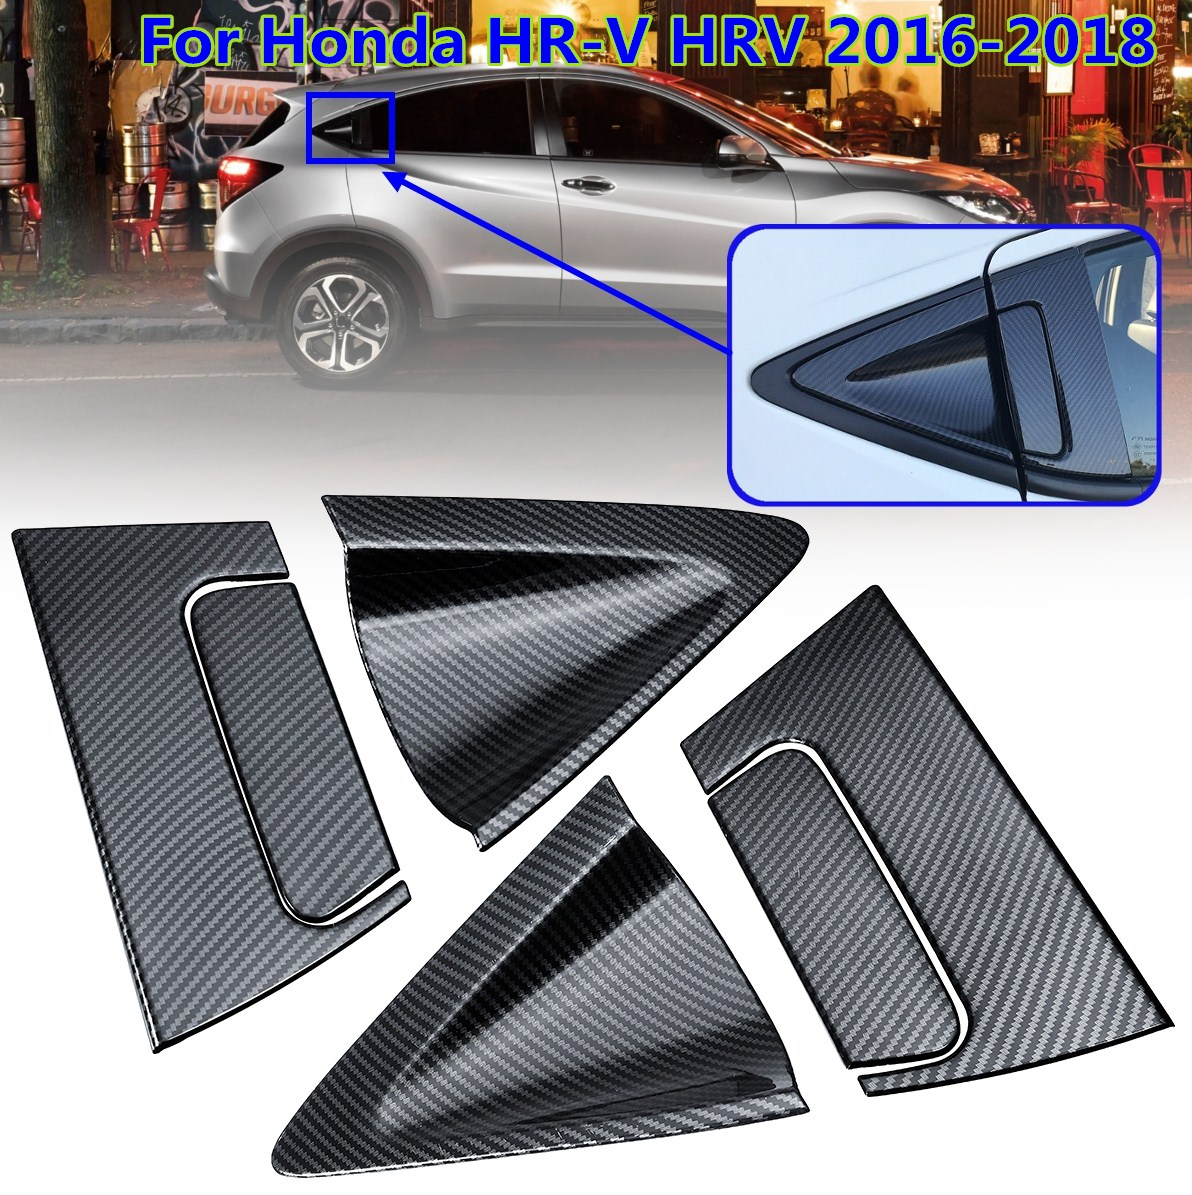 For <font><b>Honda</b></font> Vezel HR-V <font><b>HRV</b></font> 2016 2017 2018 Car Accessories 6 x ABS Chrome/Carbon fiber Side Rear <font><b>Door</b></font> <font><b>Handle</b></font> Bowl Cover Insert Trim image